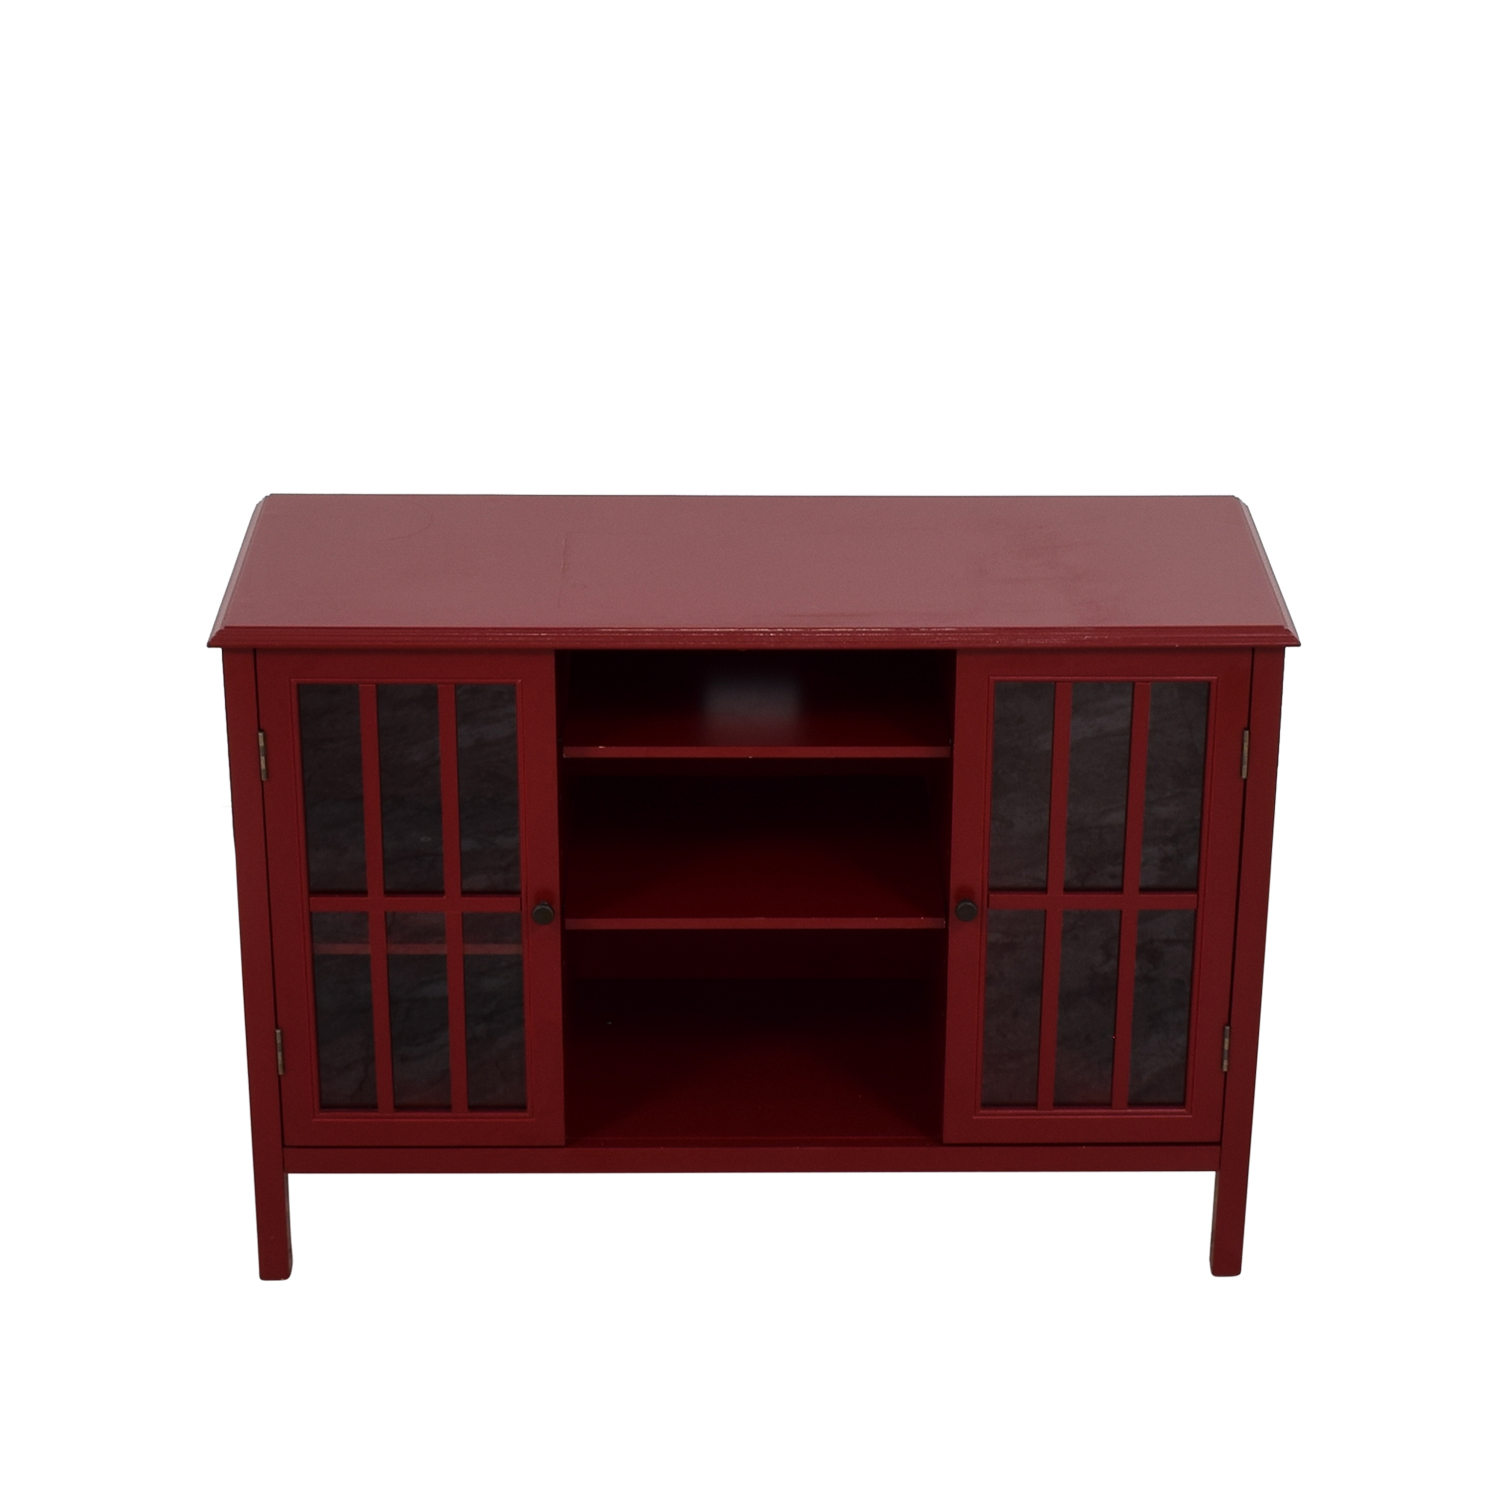 off target windham two door cabinet with shelves storage used accent table dimensions round drawer aluminum outdoor end tables lift top luxury linens bbq grill beach lamps for